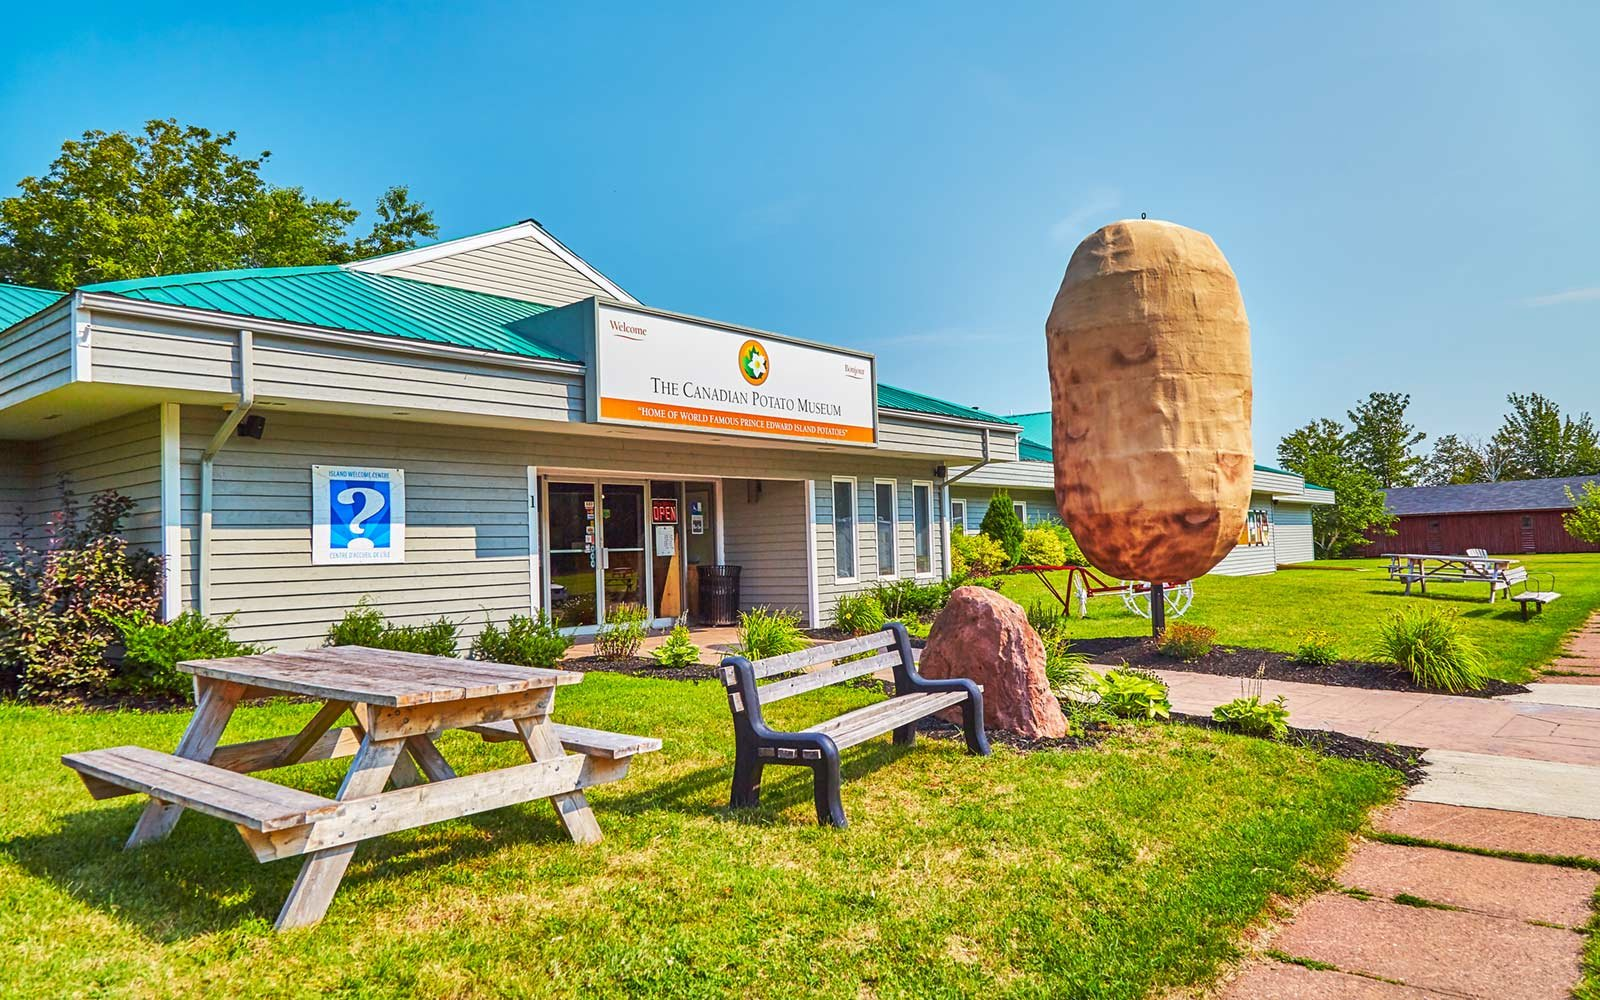 The Potato Museum, Prince Edward Island, Canada